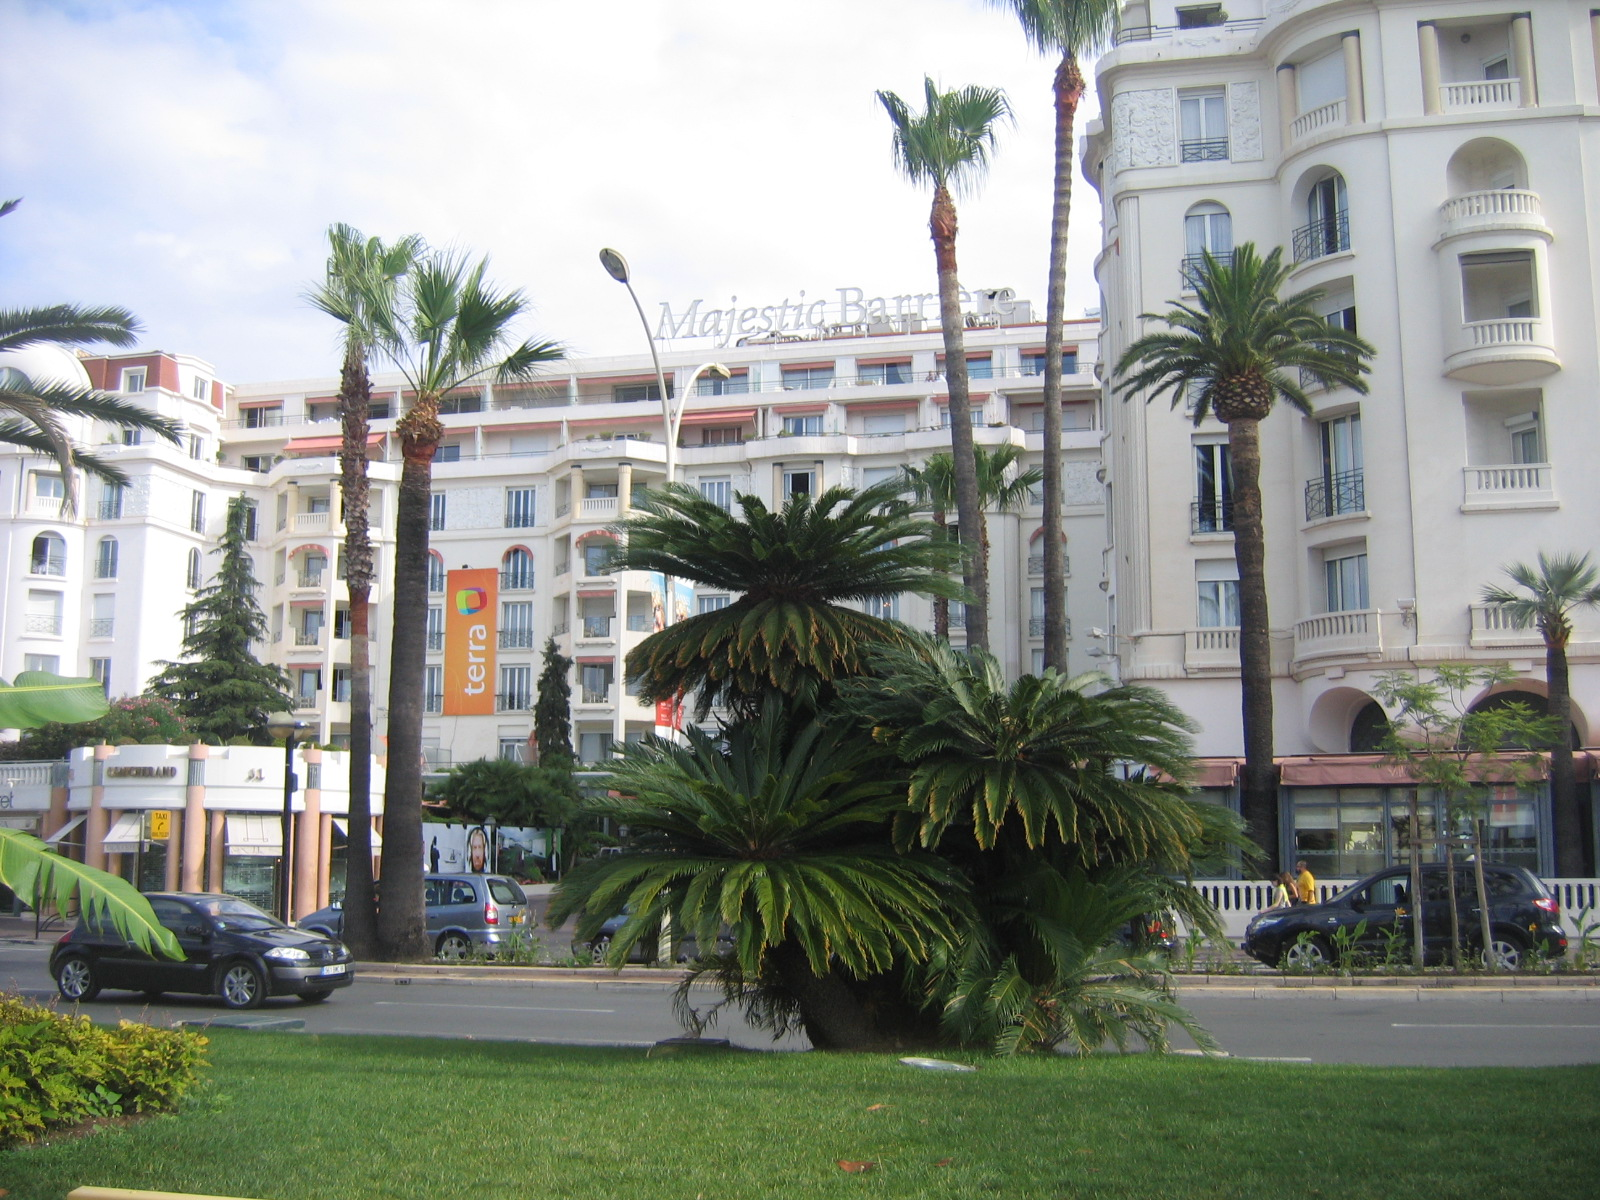 Hotel majestic barri thousand for Hotels barriere